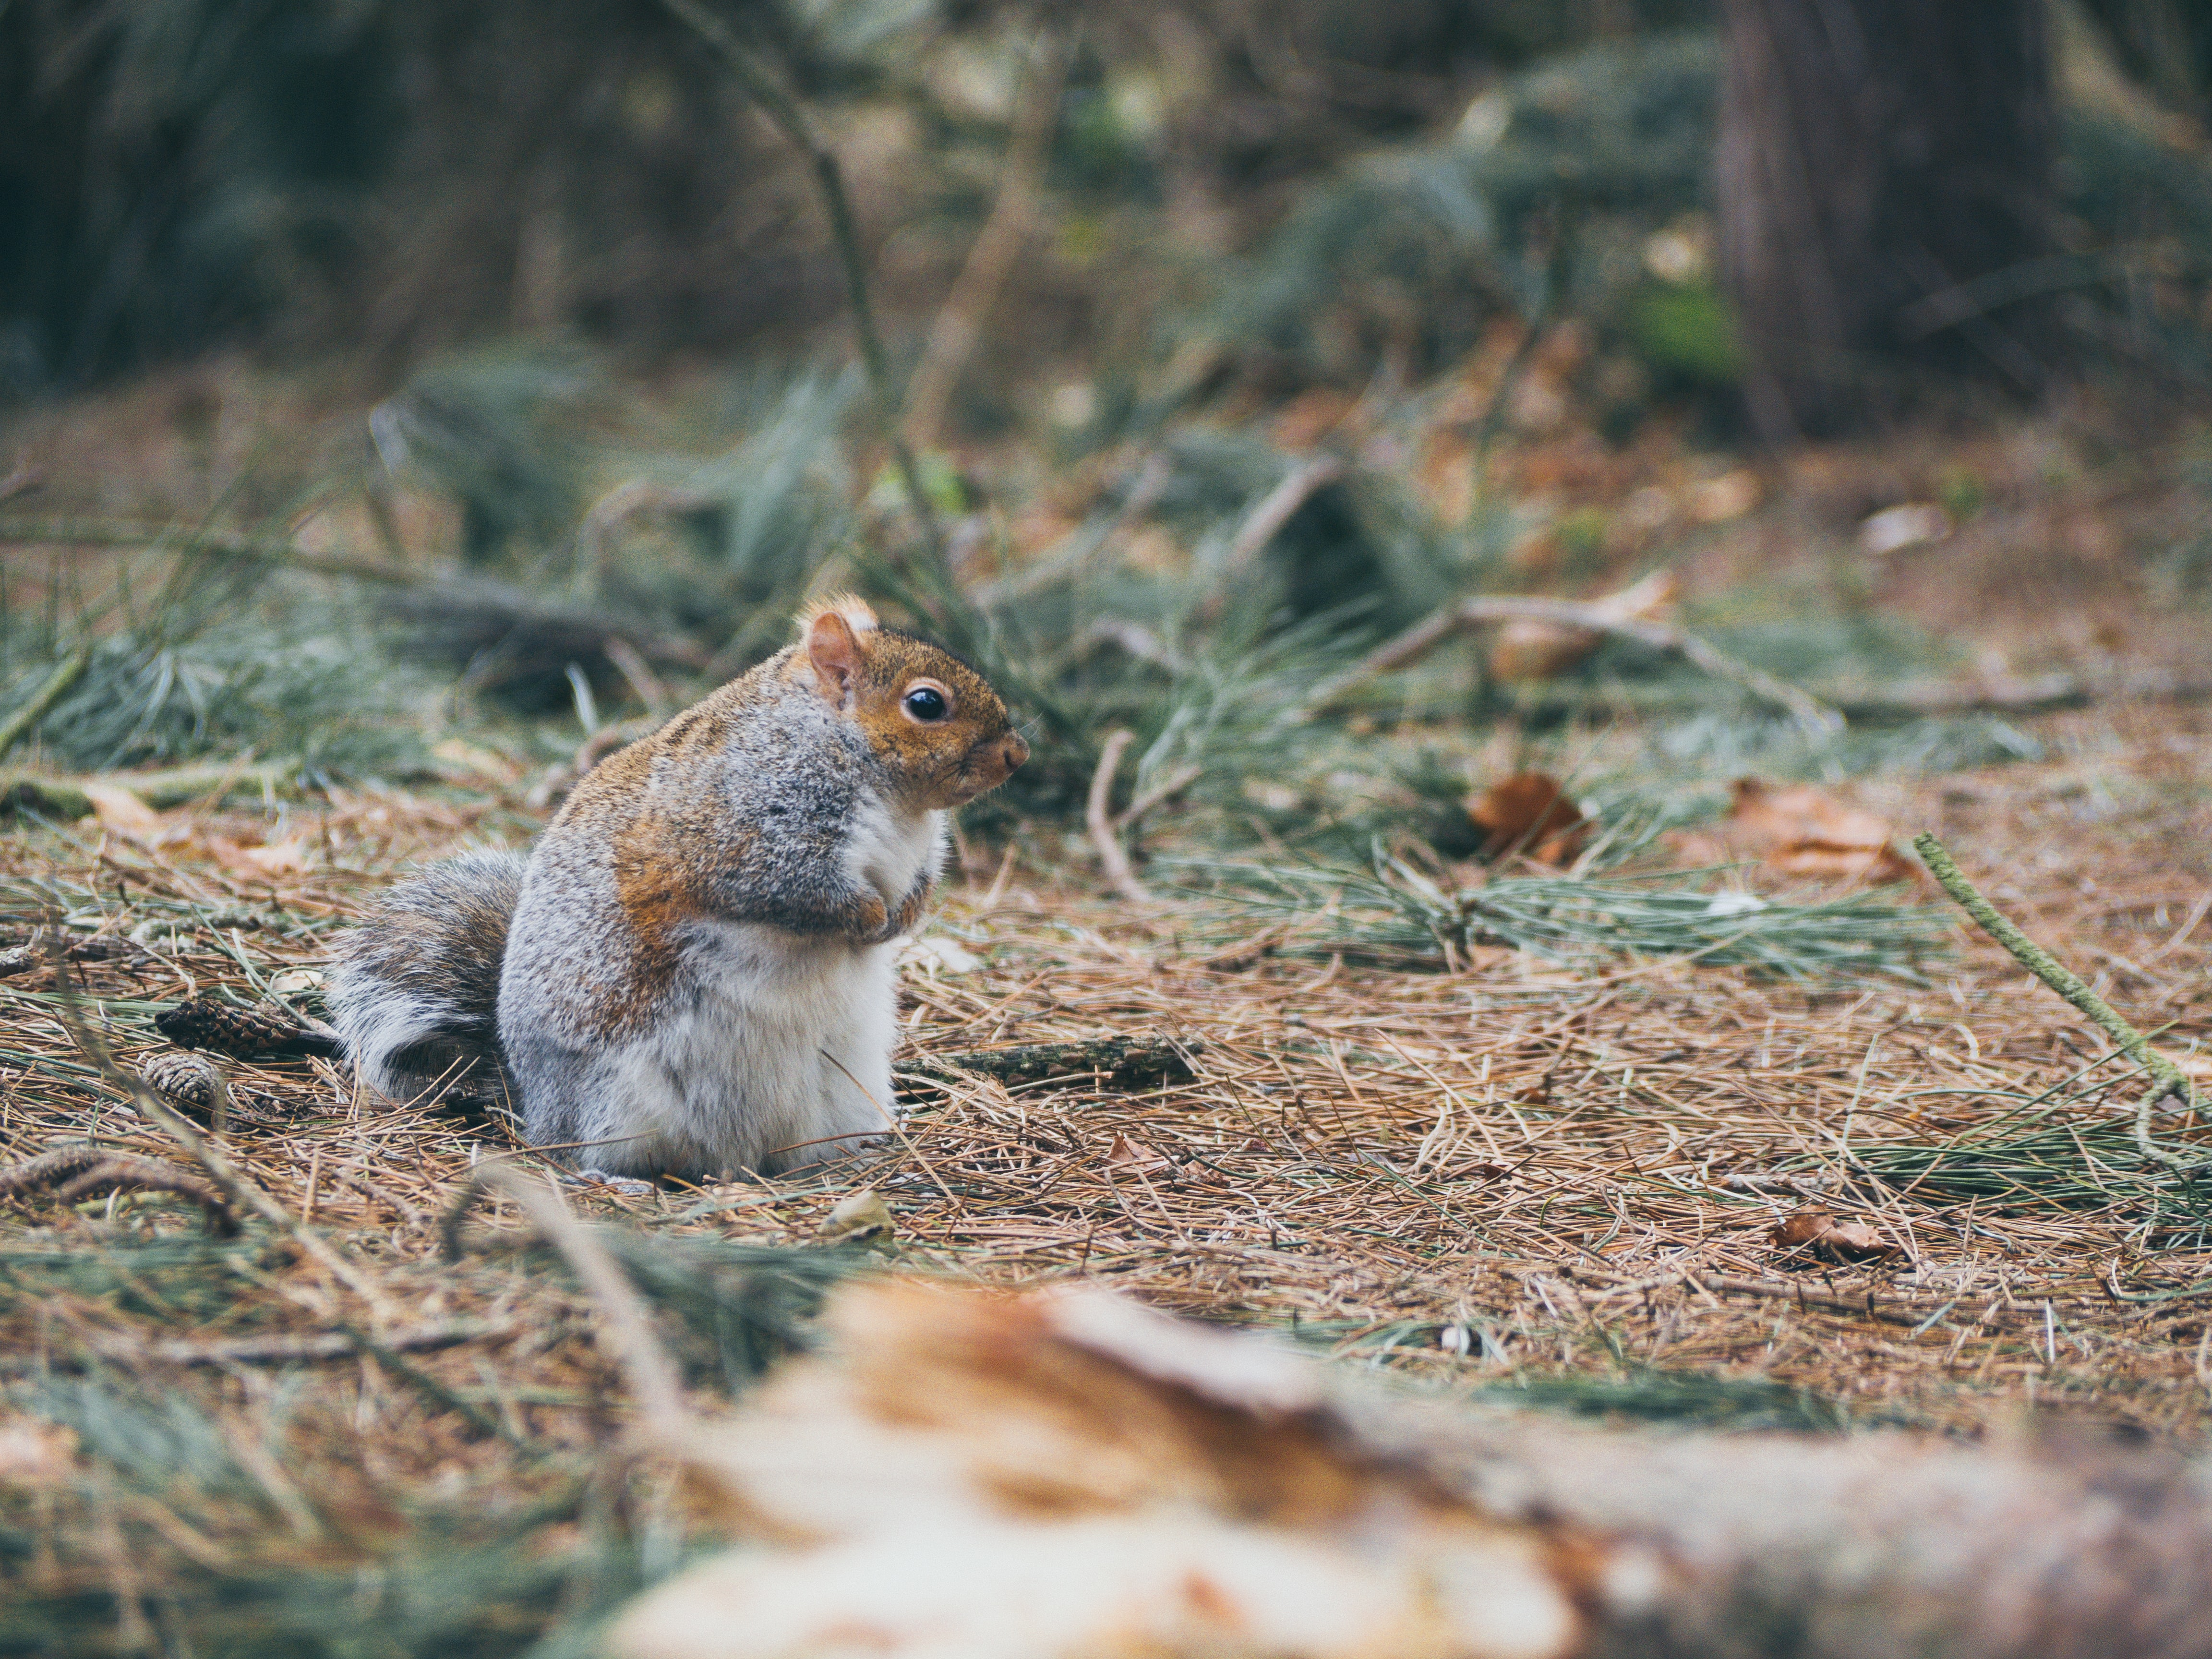 Squirrel holding its hands in a forest floor